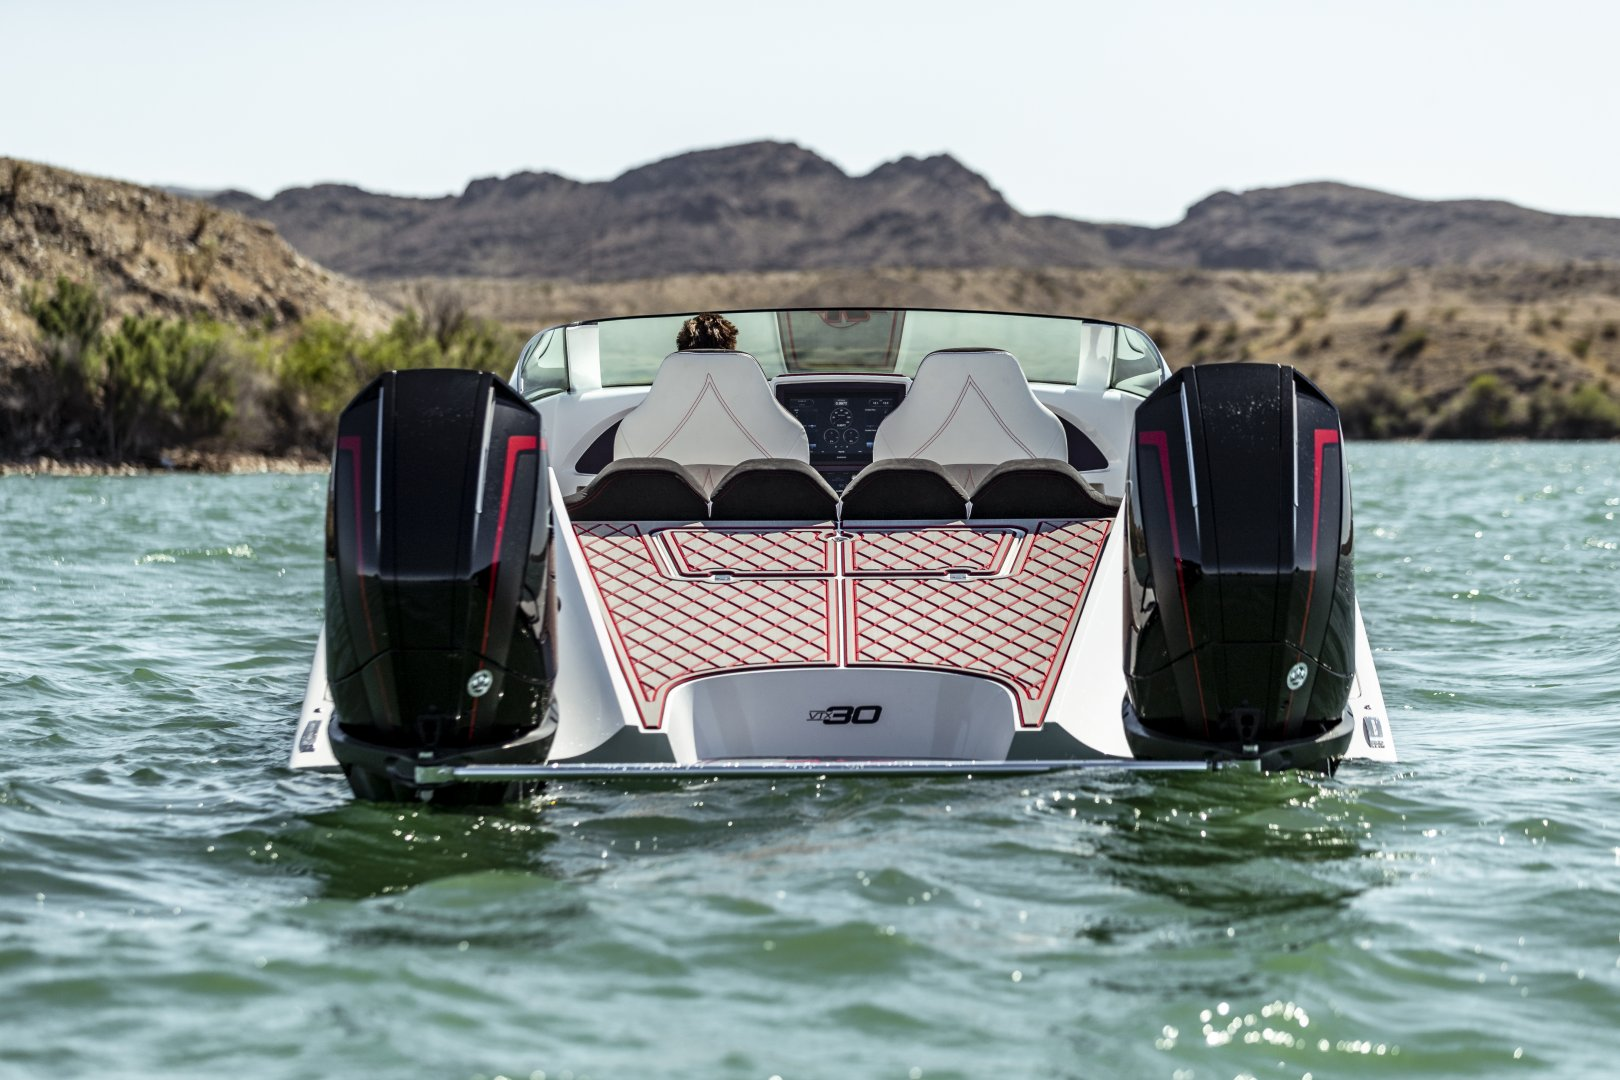 victory-powerboats-west-2020-tom-leigh-161-3.jpg